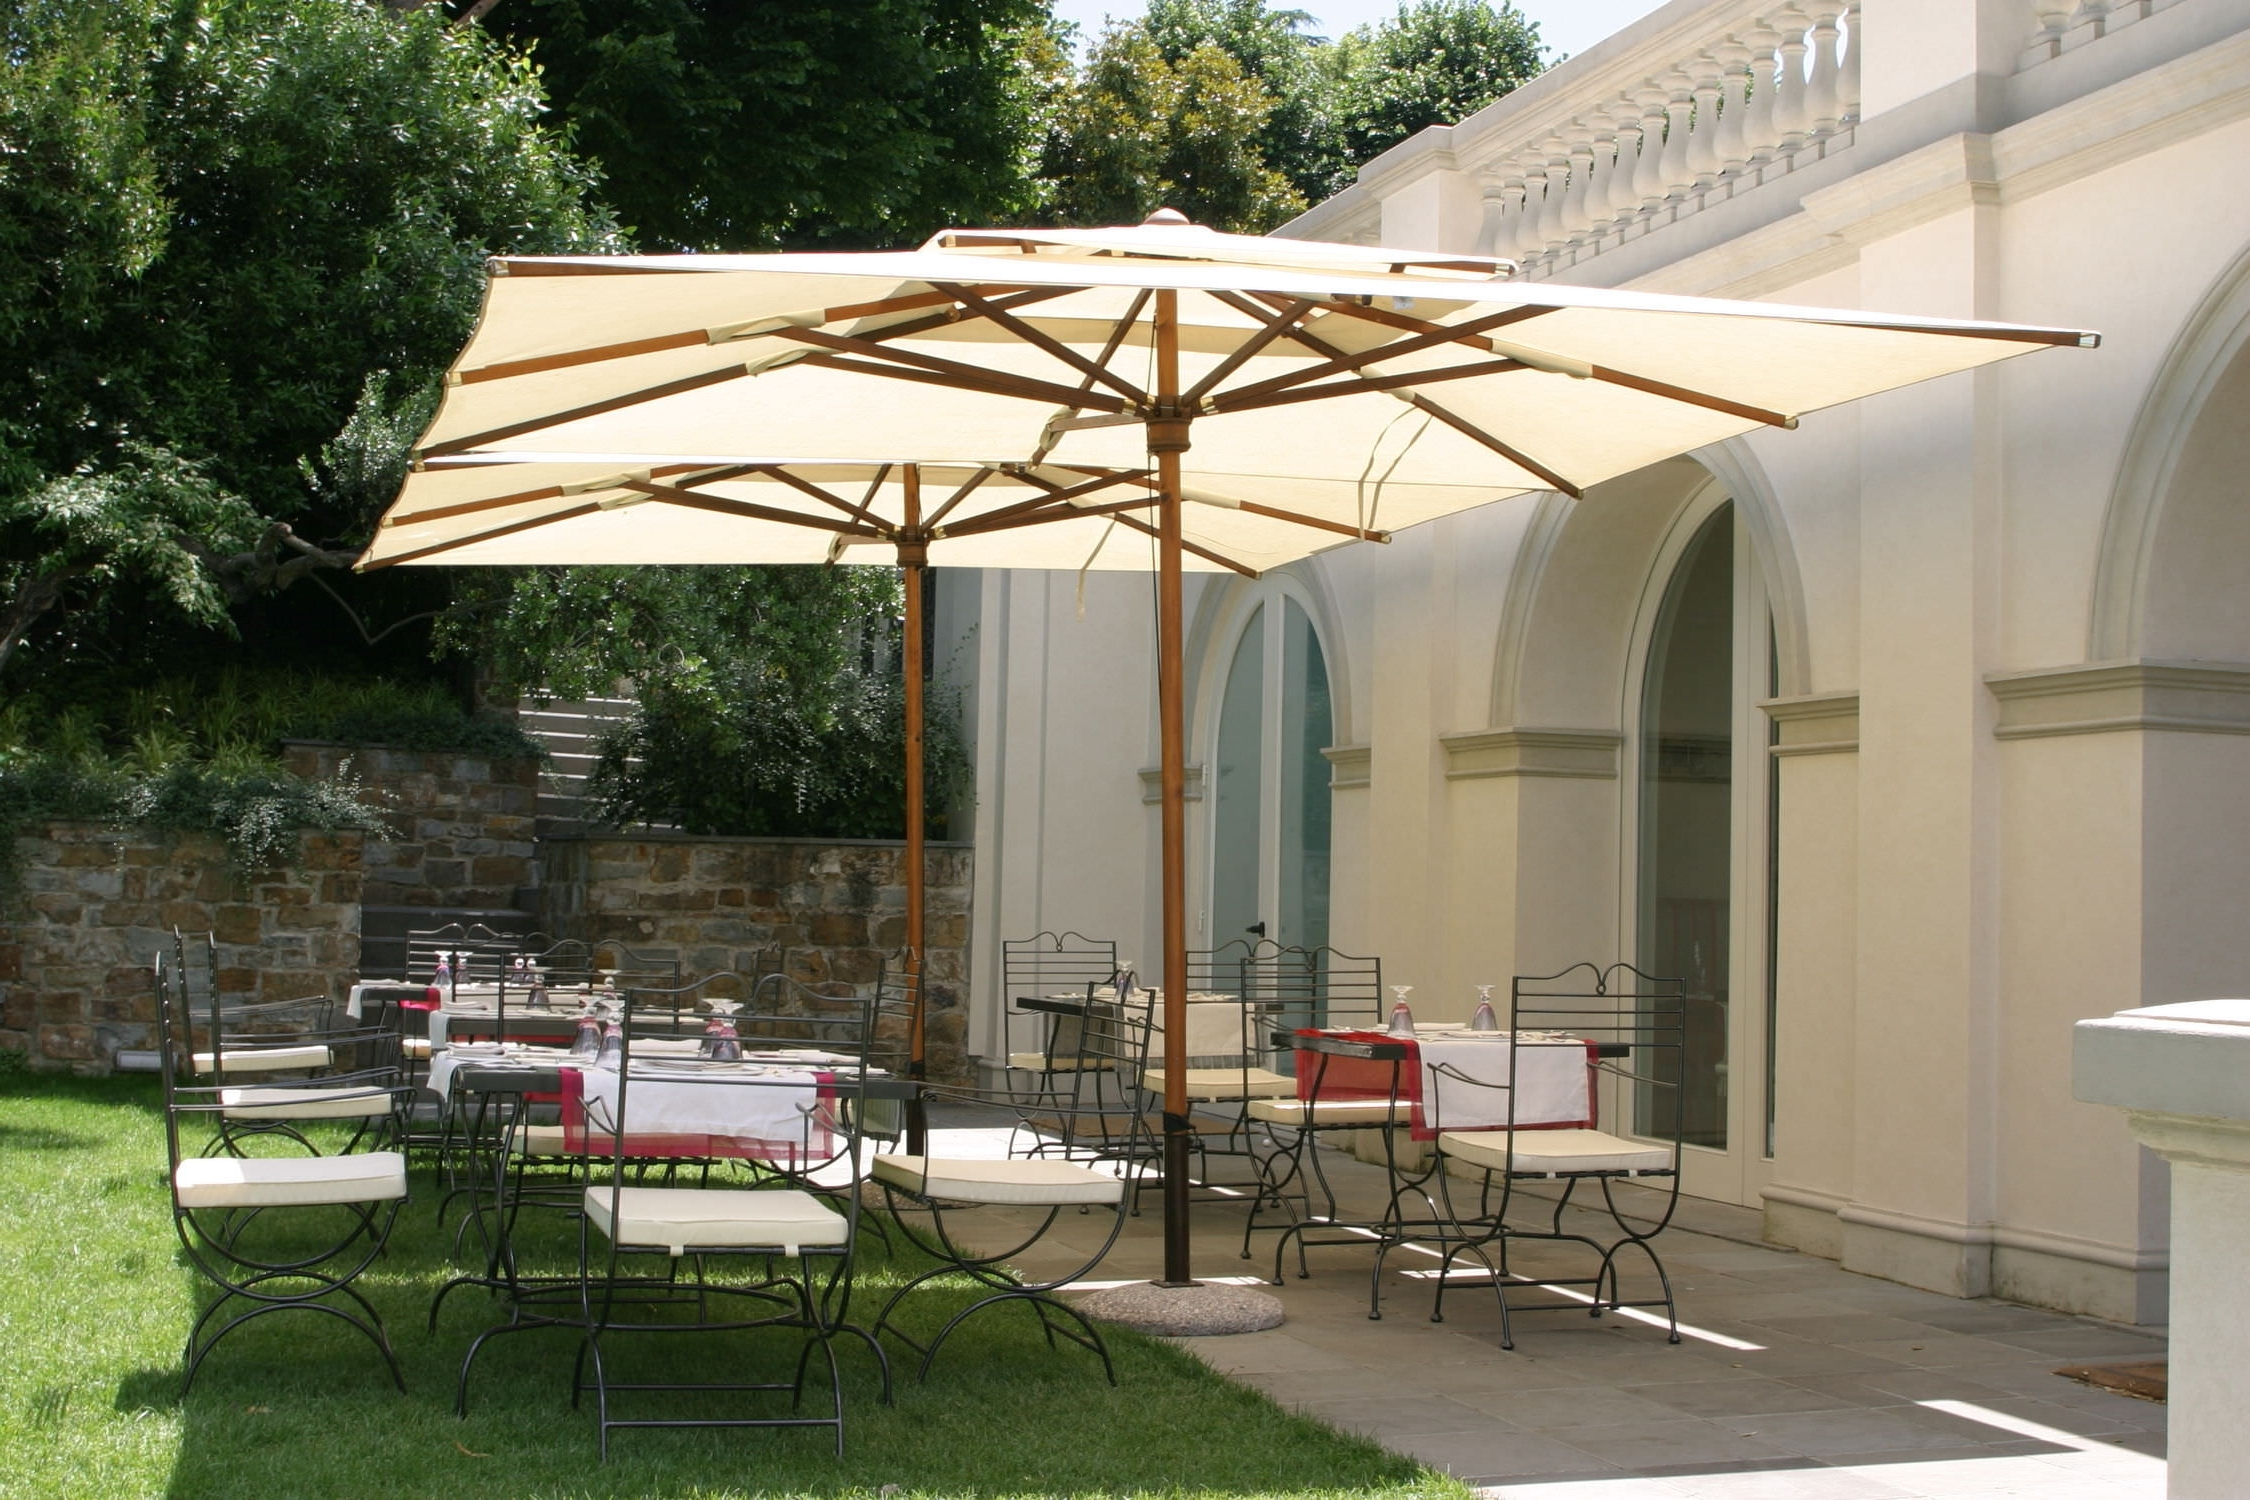 Wooden Patio Umbrellas With Regard To Famous Aluminum Offset Patio Umbrella (View 20 of 20)